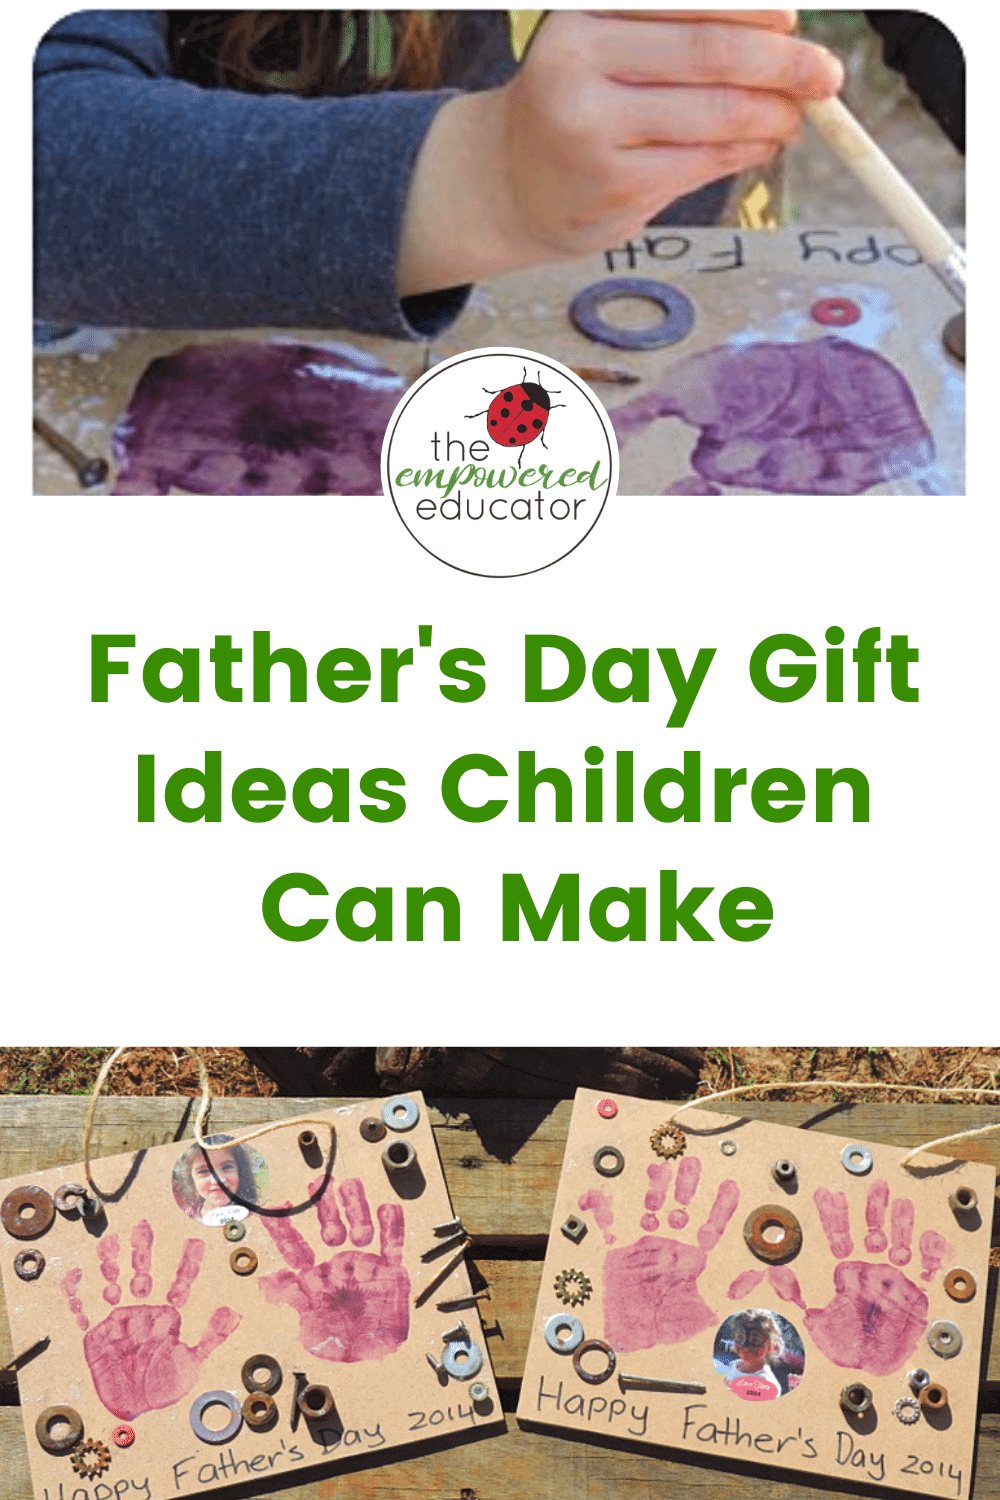 Father's Day gift ideas that the children can make